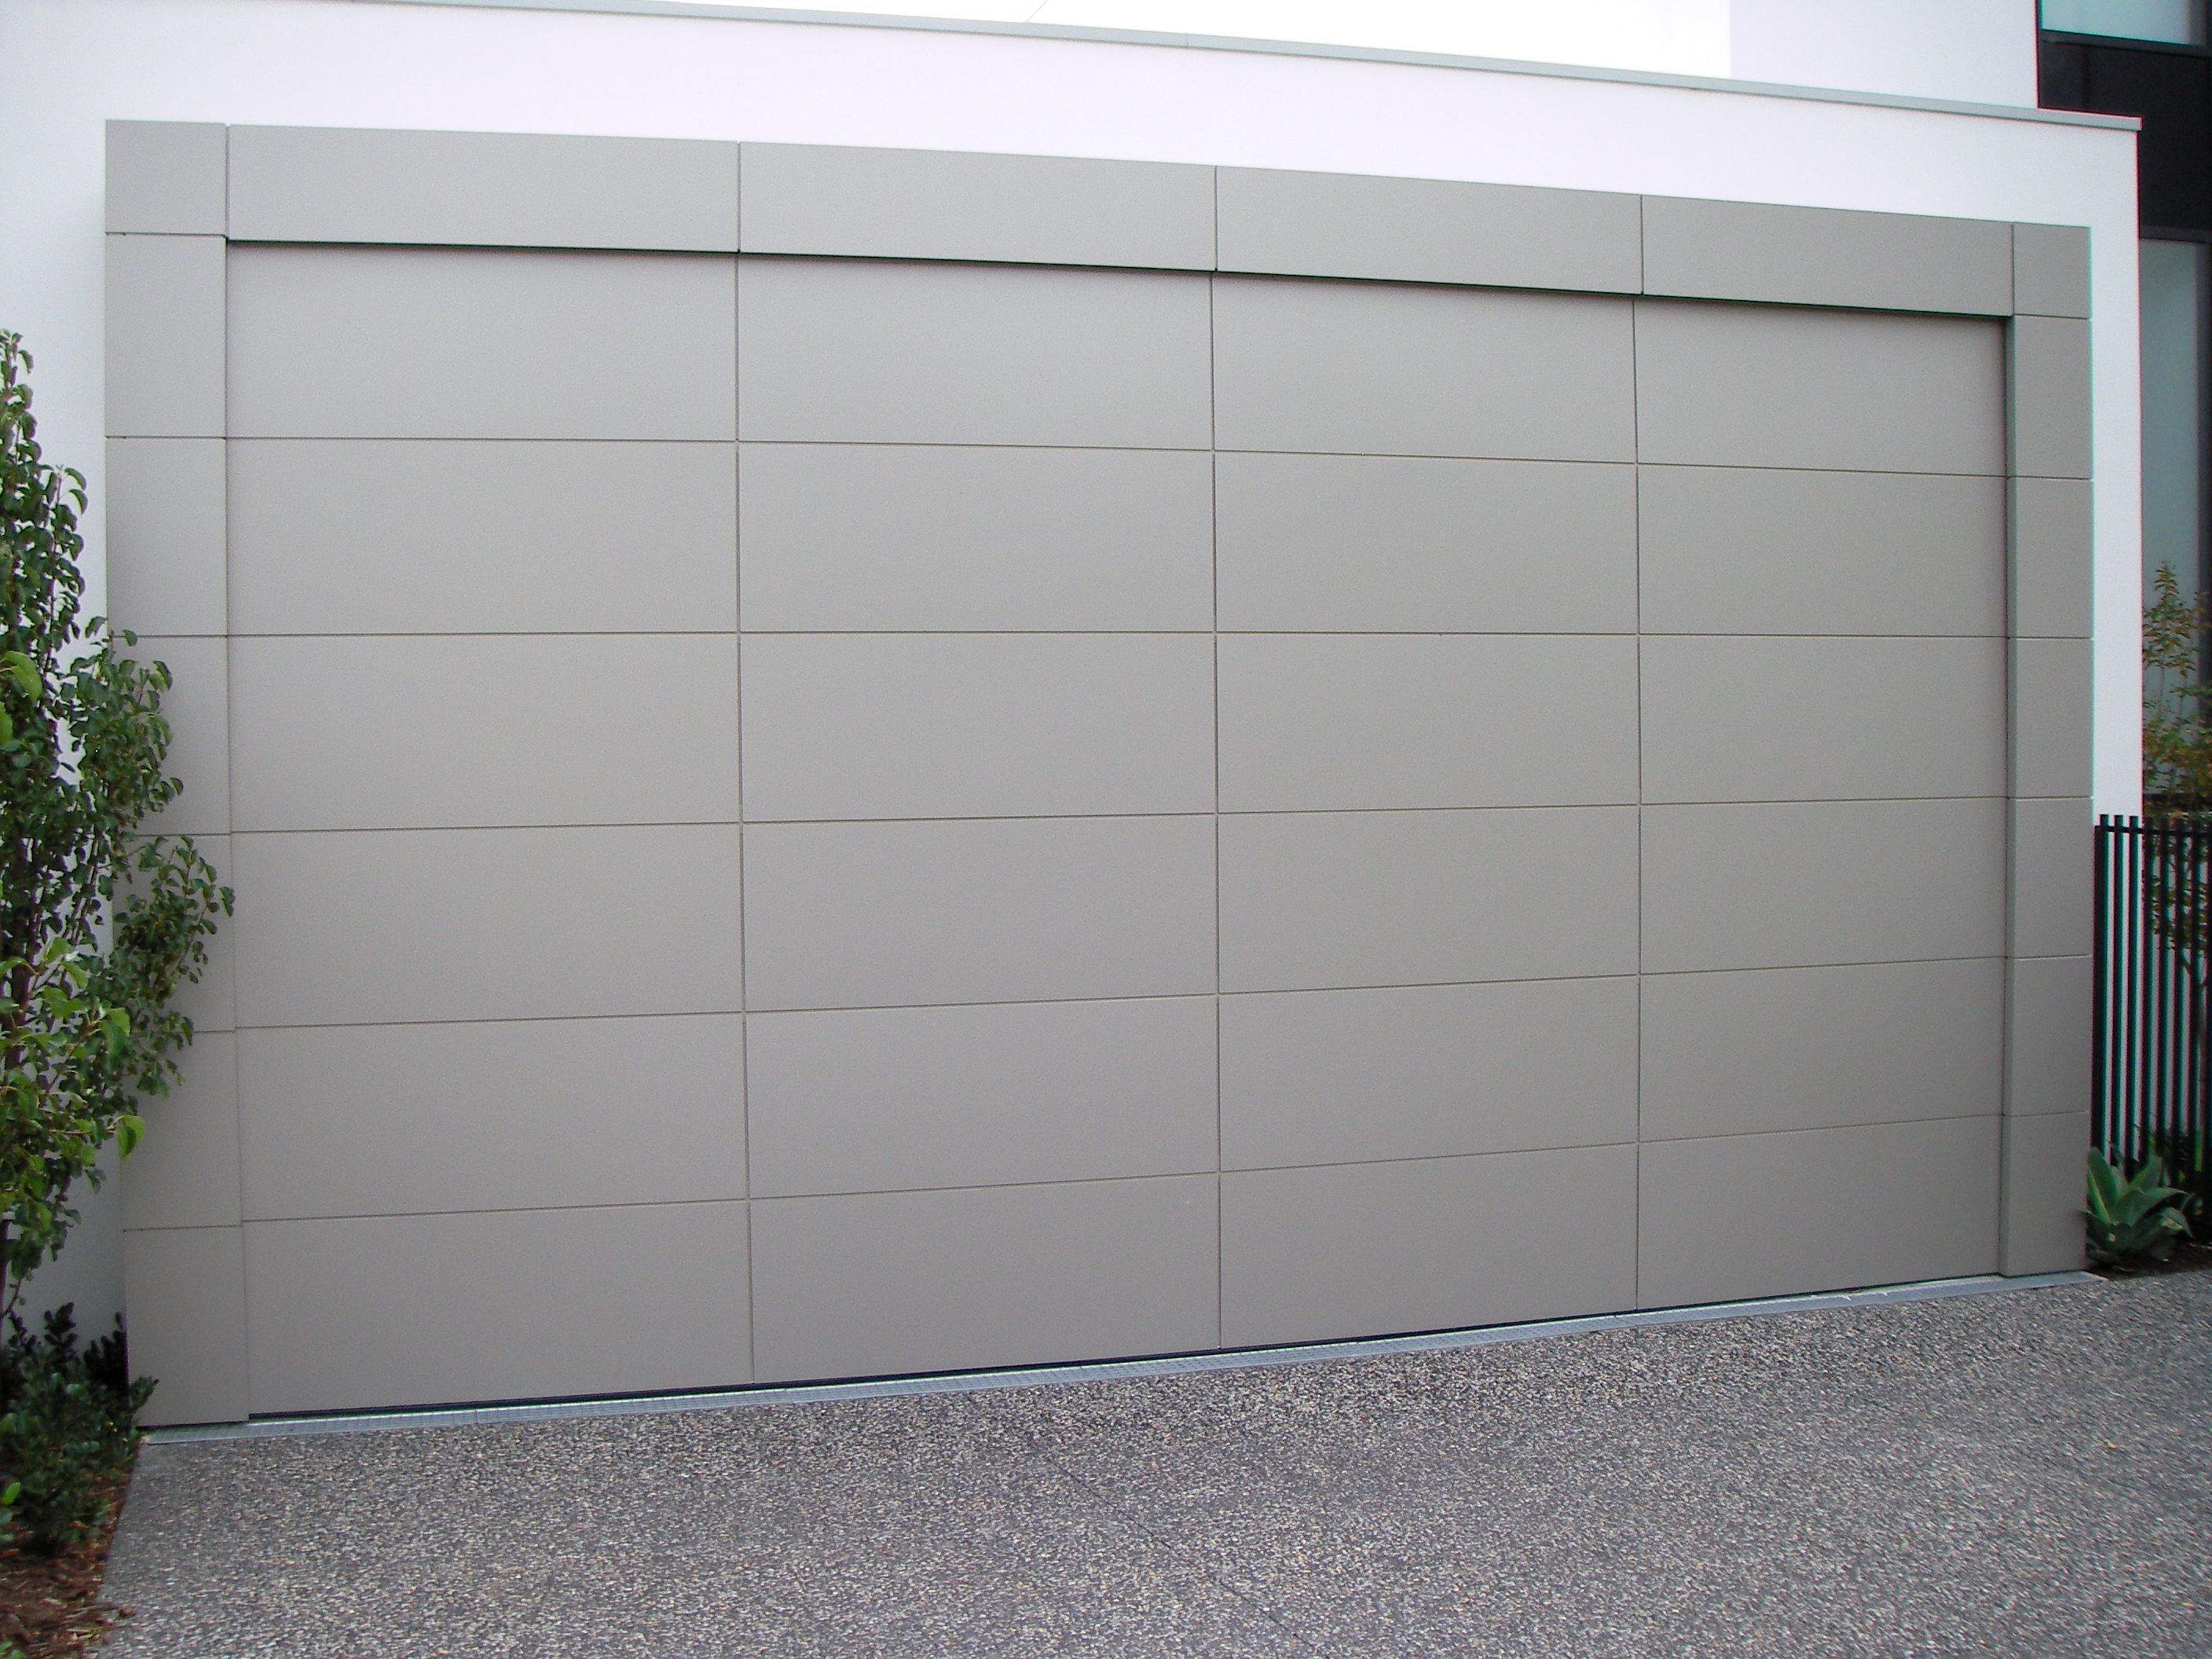 & Aluminium Composite Garage Door